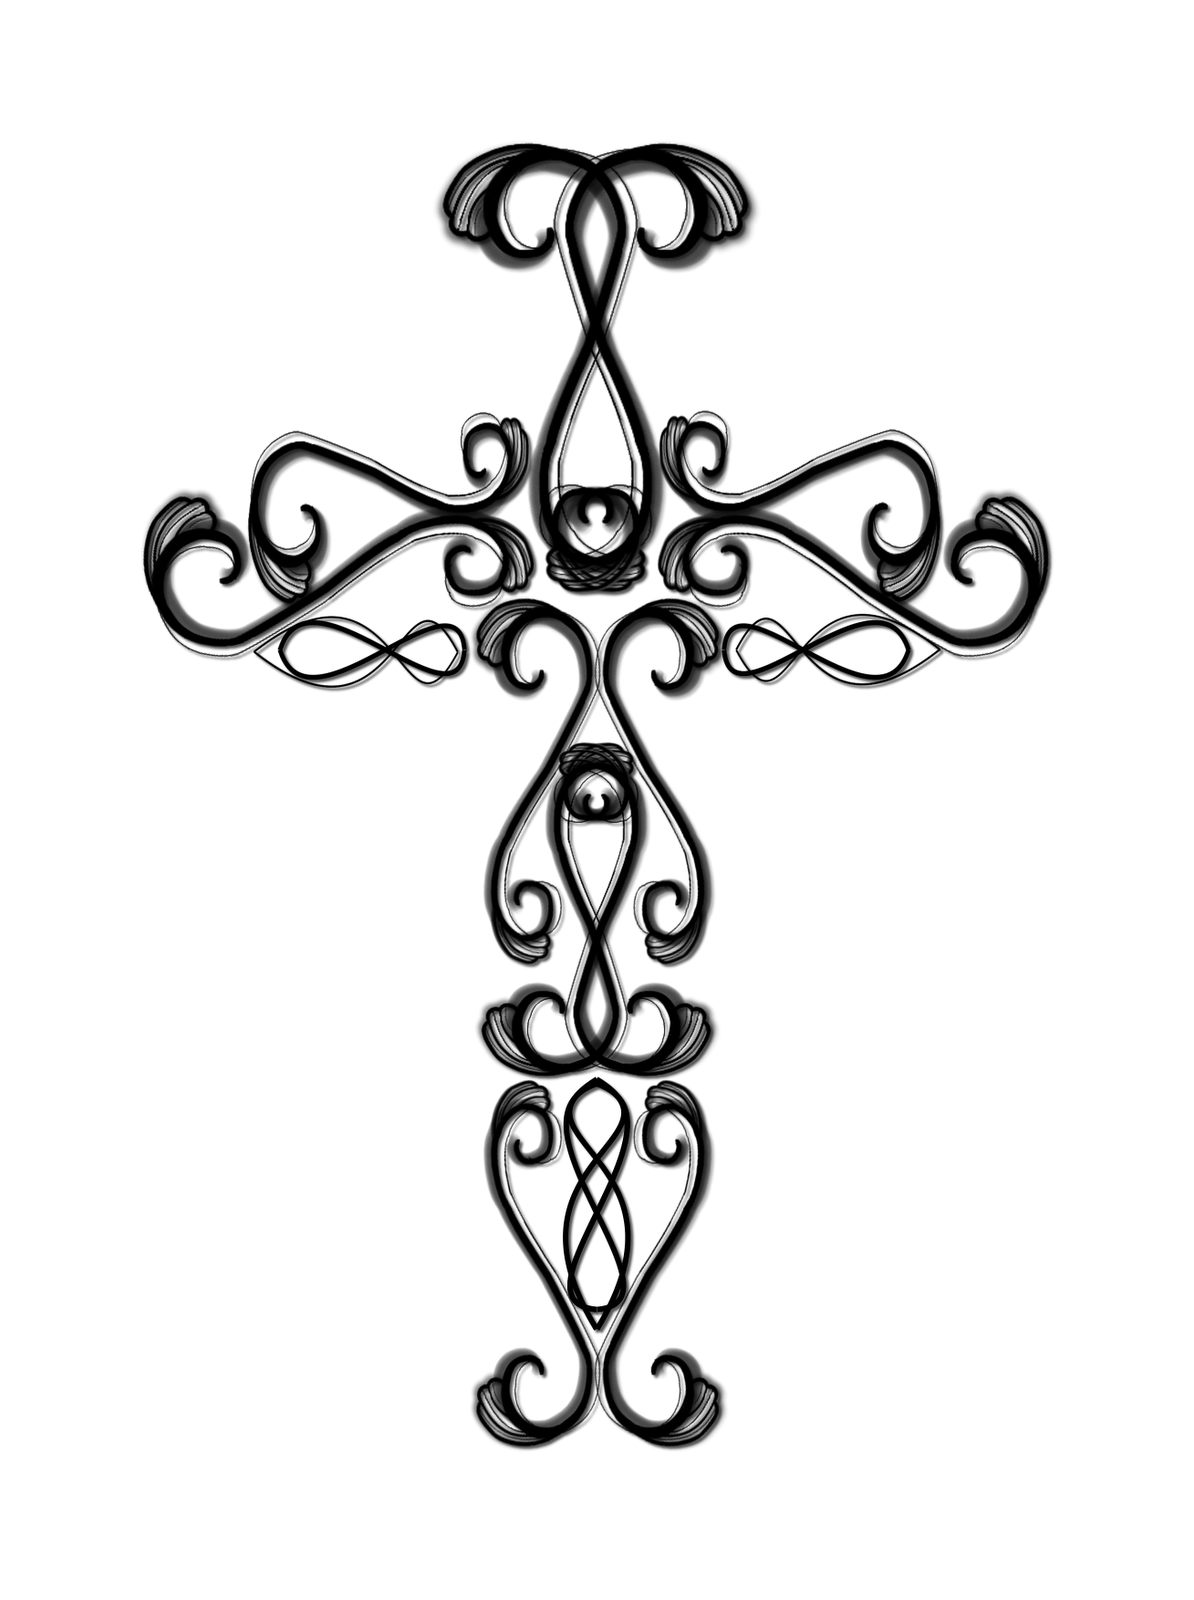 Manly cross clipart clip art transparent Catholic Cross Drawing | Clipart Panda - Free Clipart Images clip art transparent